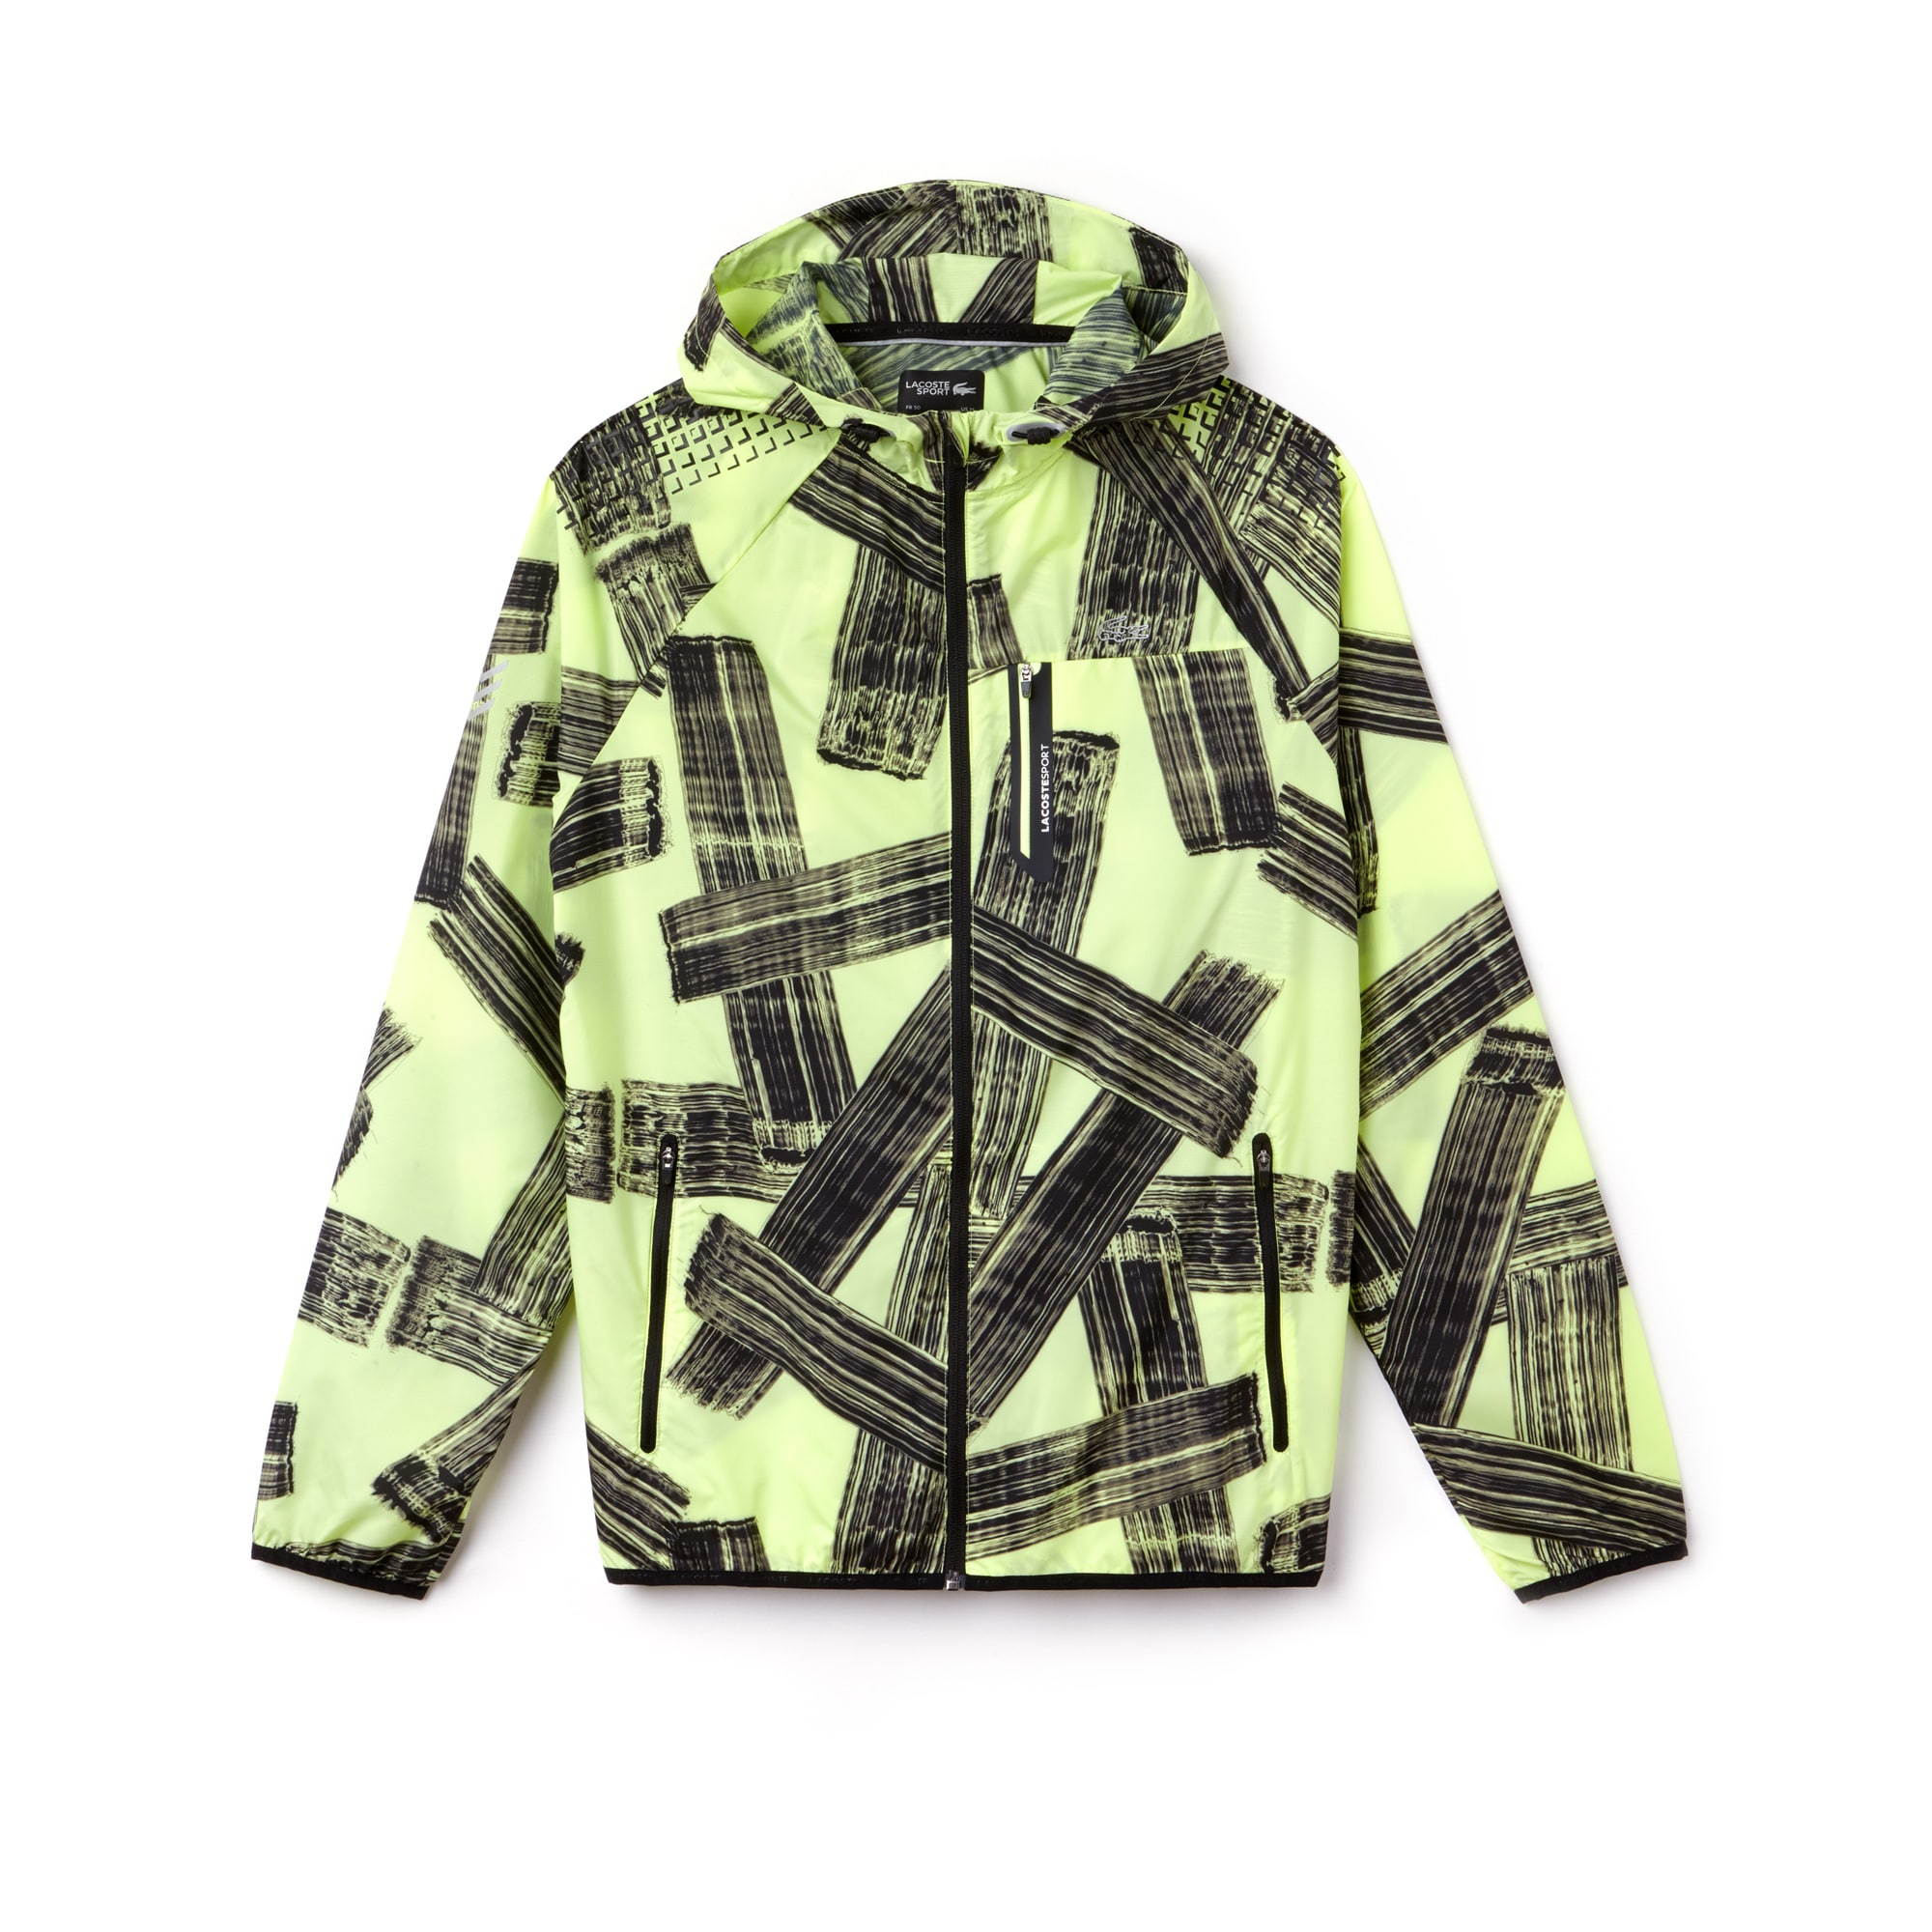 Men's Lacoste SPORT Hooded Print Tennis Jacket